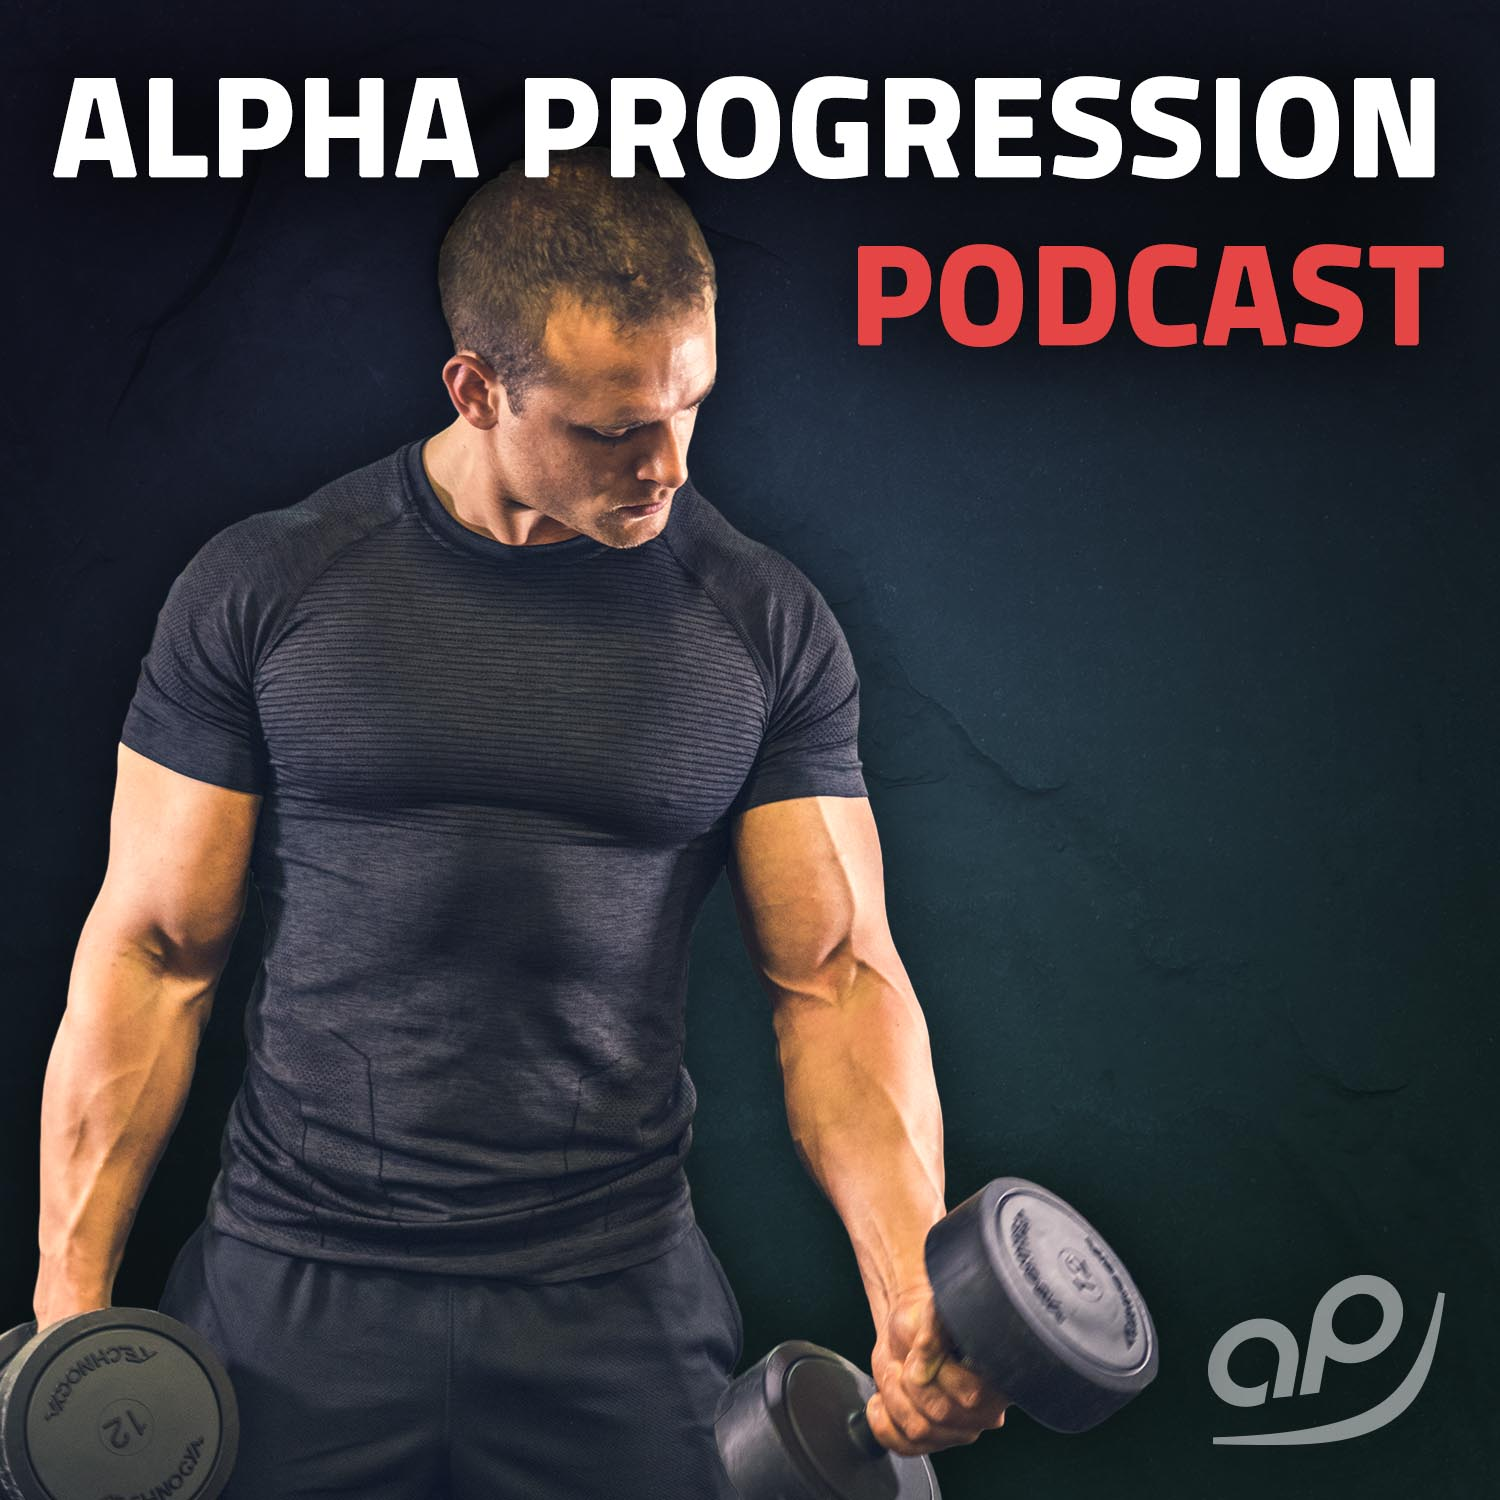 Coverbild des Alpha Progression Podcast